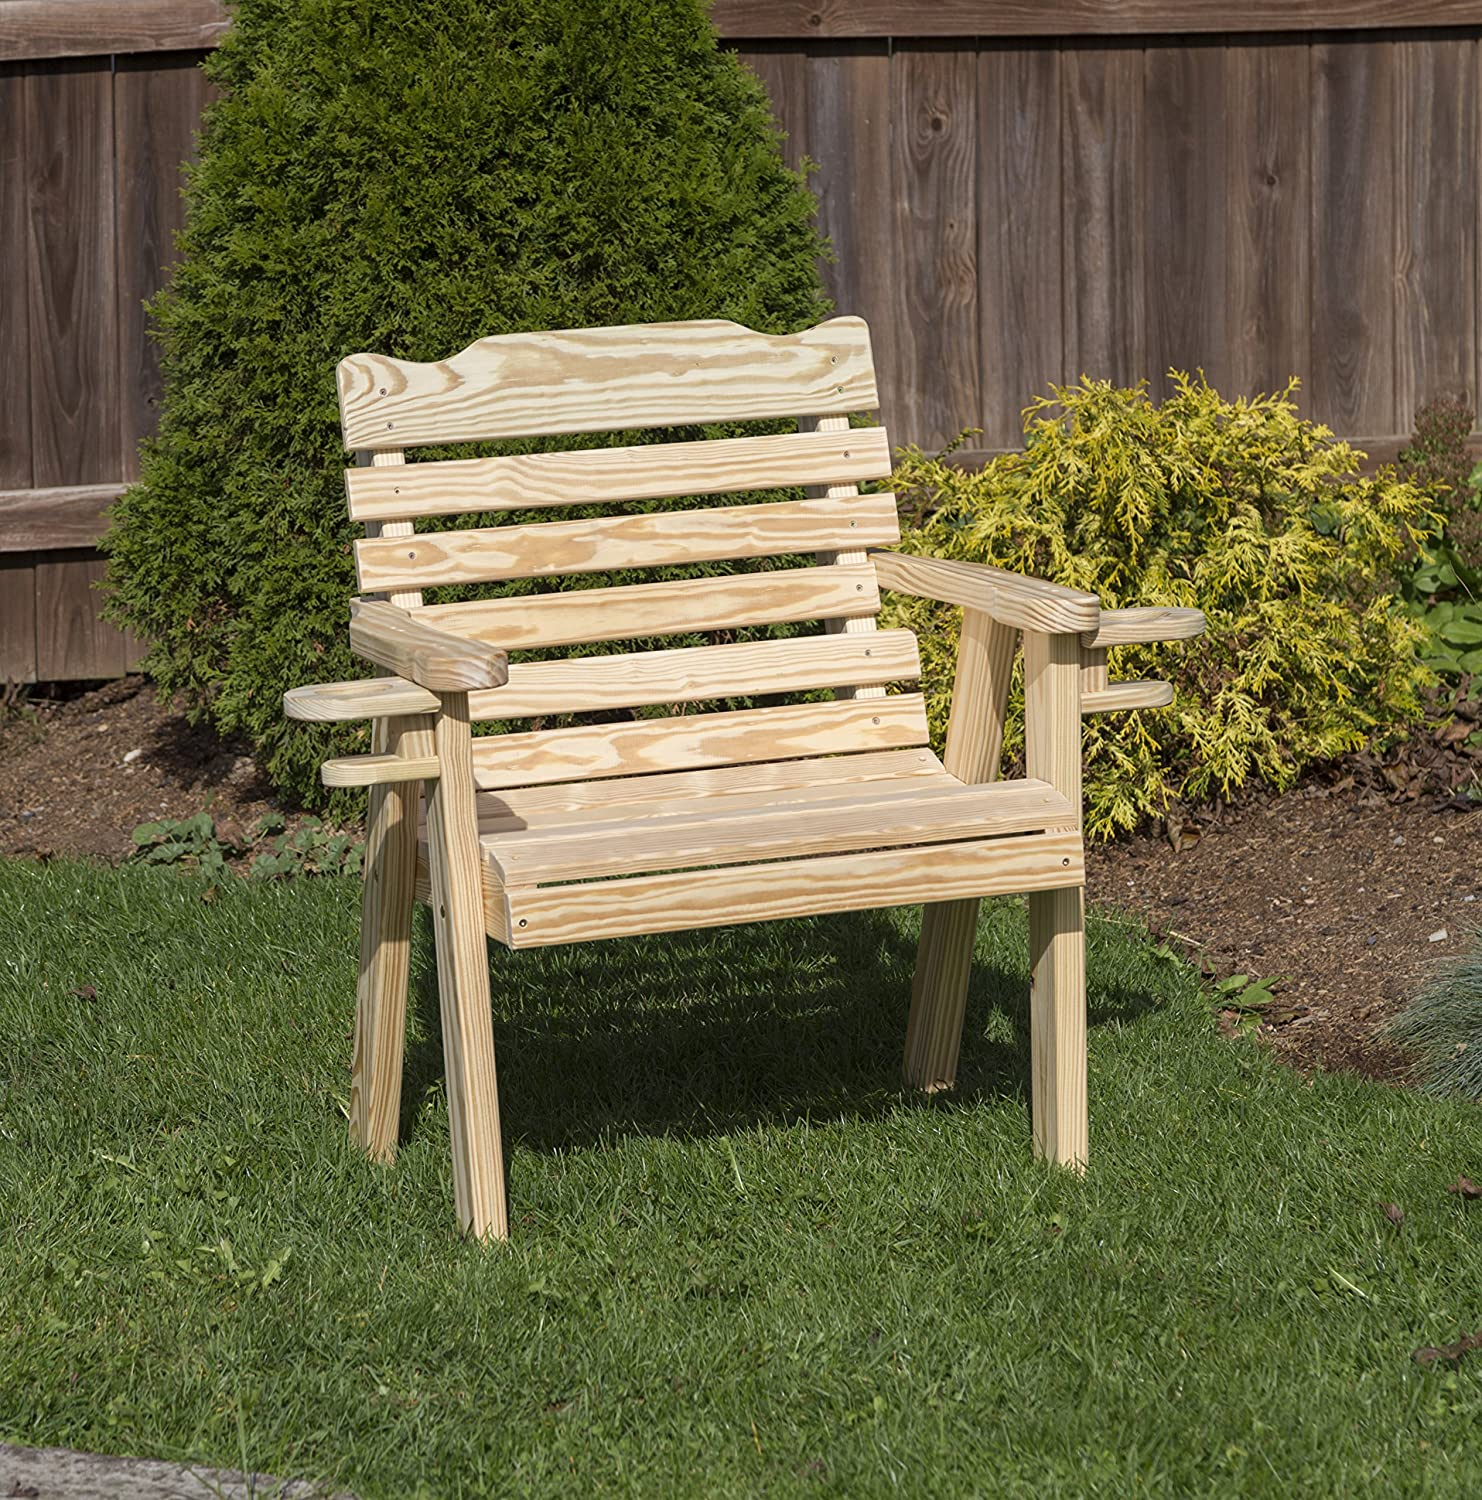 Amish Heavy Duty 800 Lb Classic Park Style Pressure Treated Garden Patio Outdoor Bench Chair 2 FEET with Cup Holders Natural-Made in USA